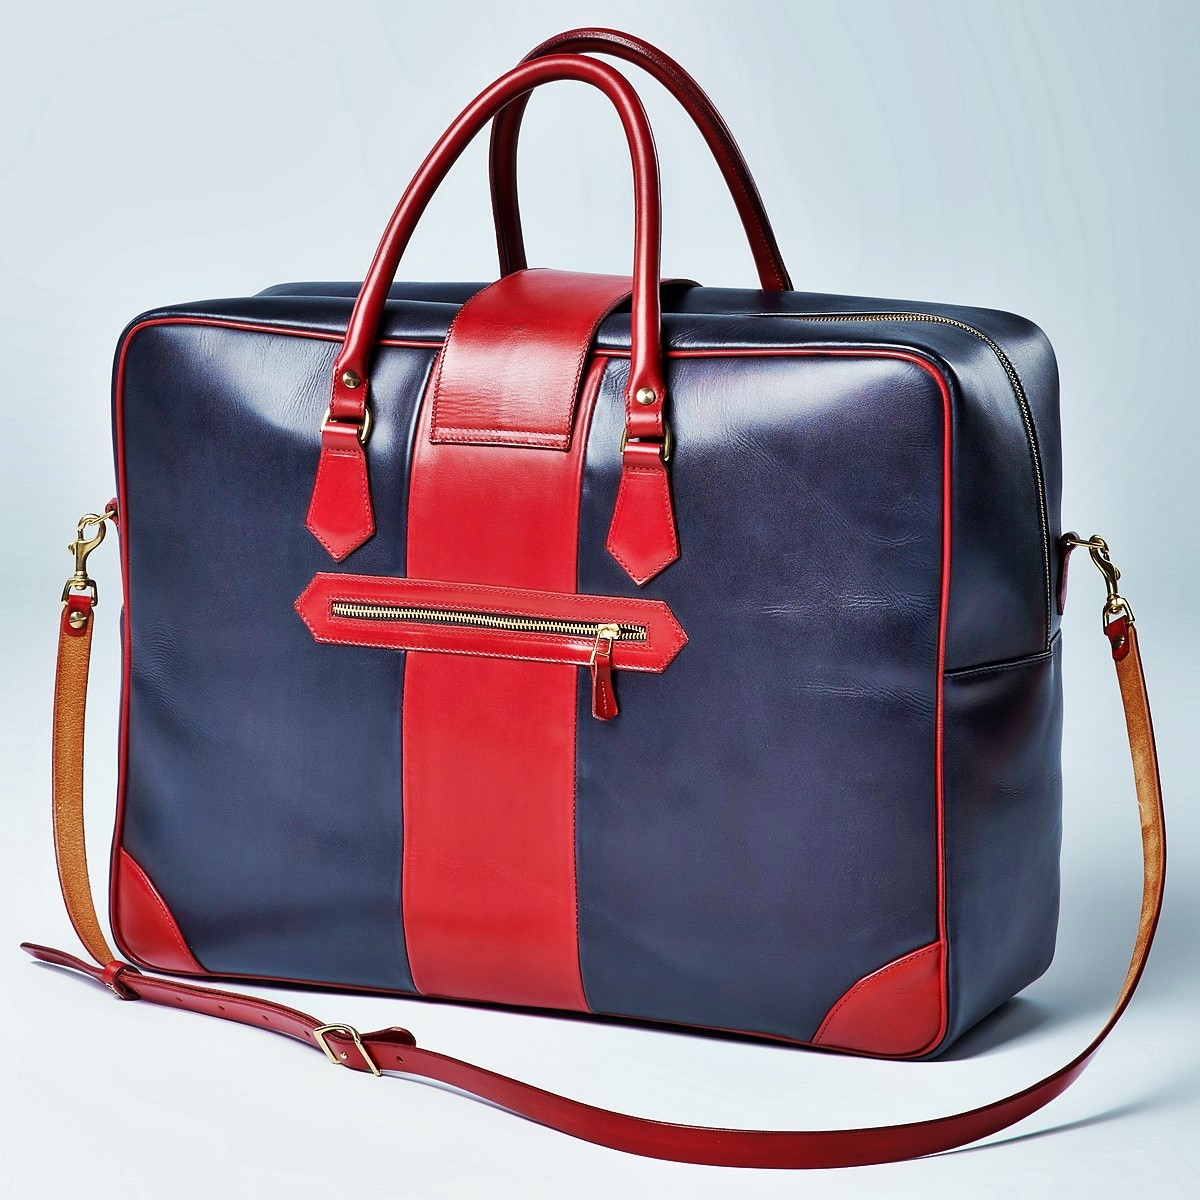 Leather suitcase HOLIDAY red currant & midnight blue